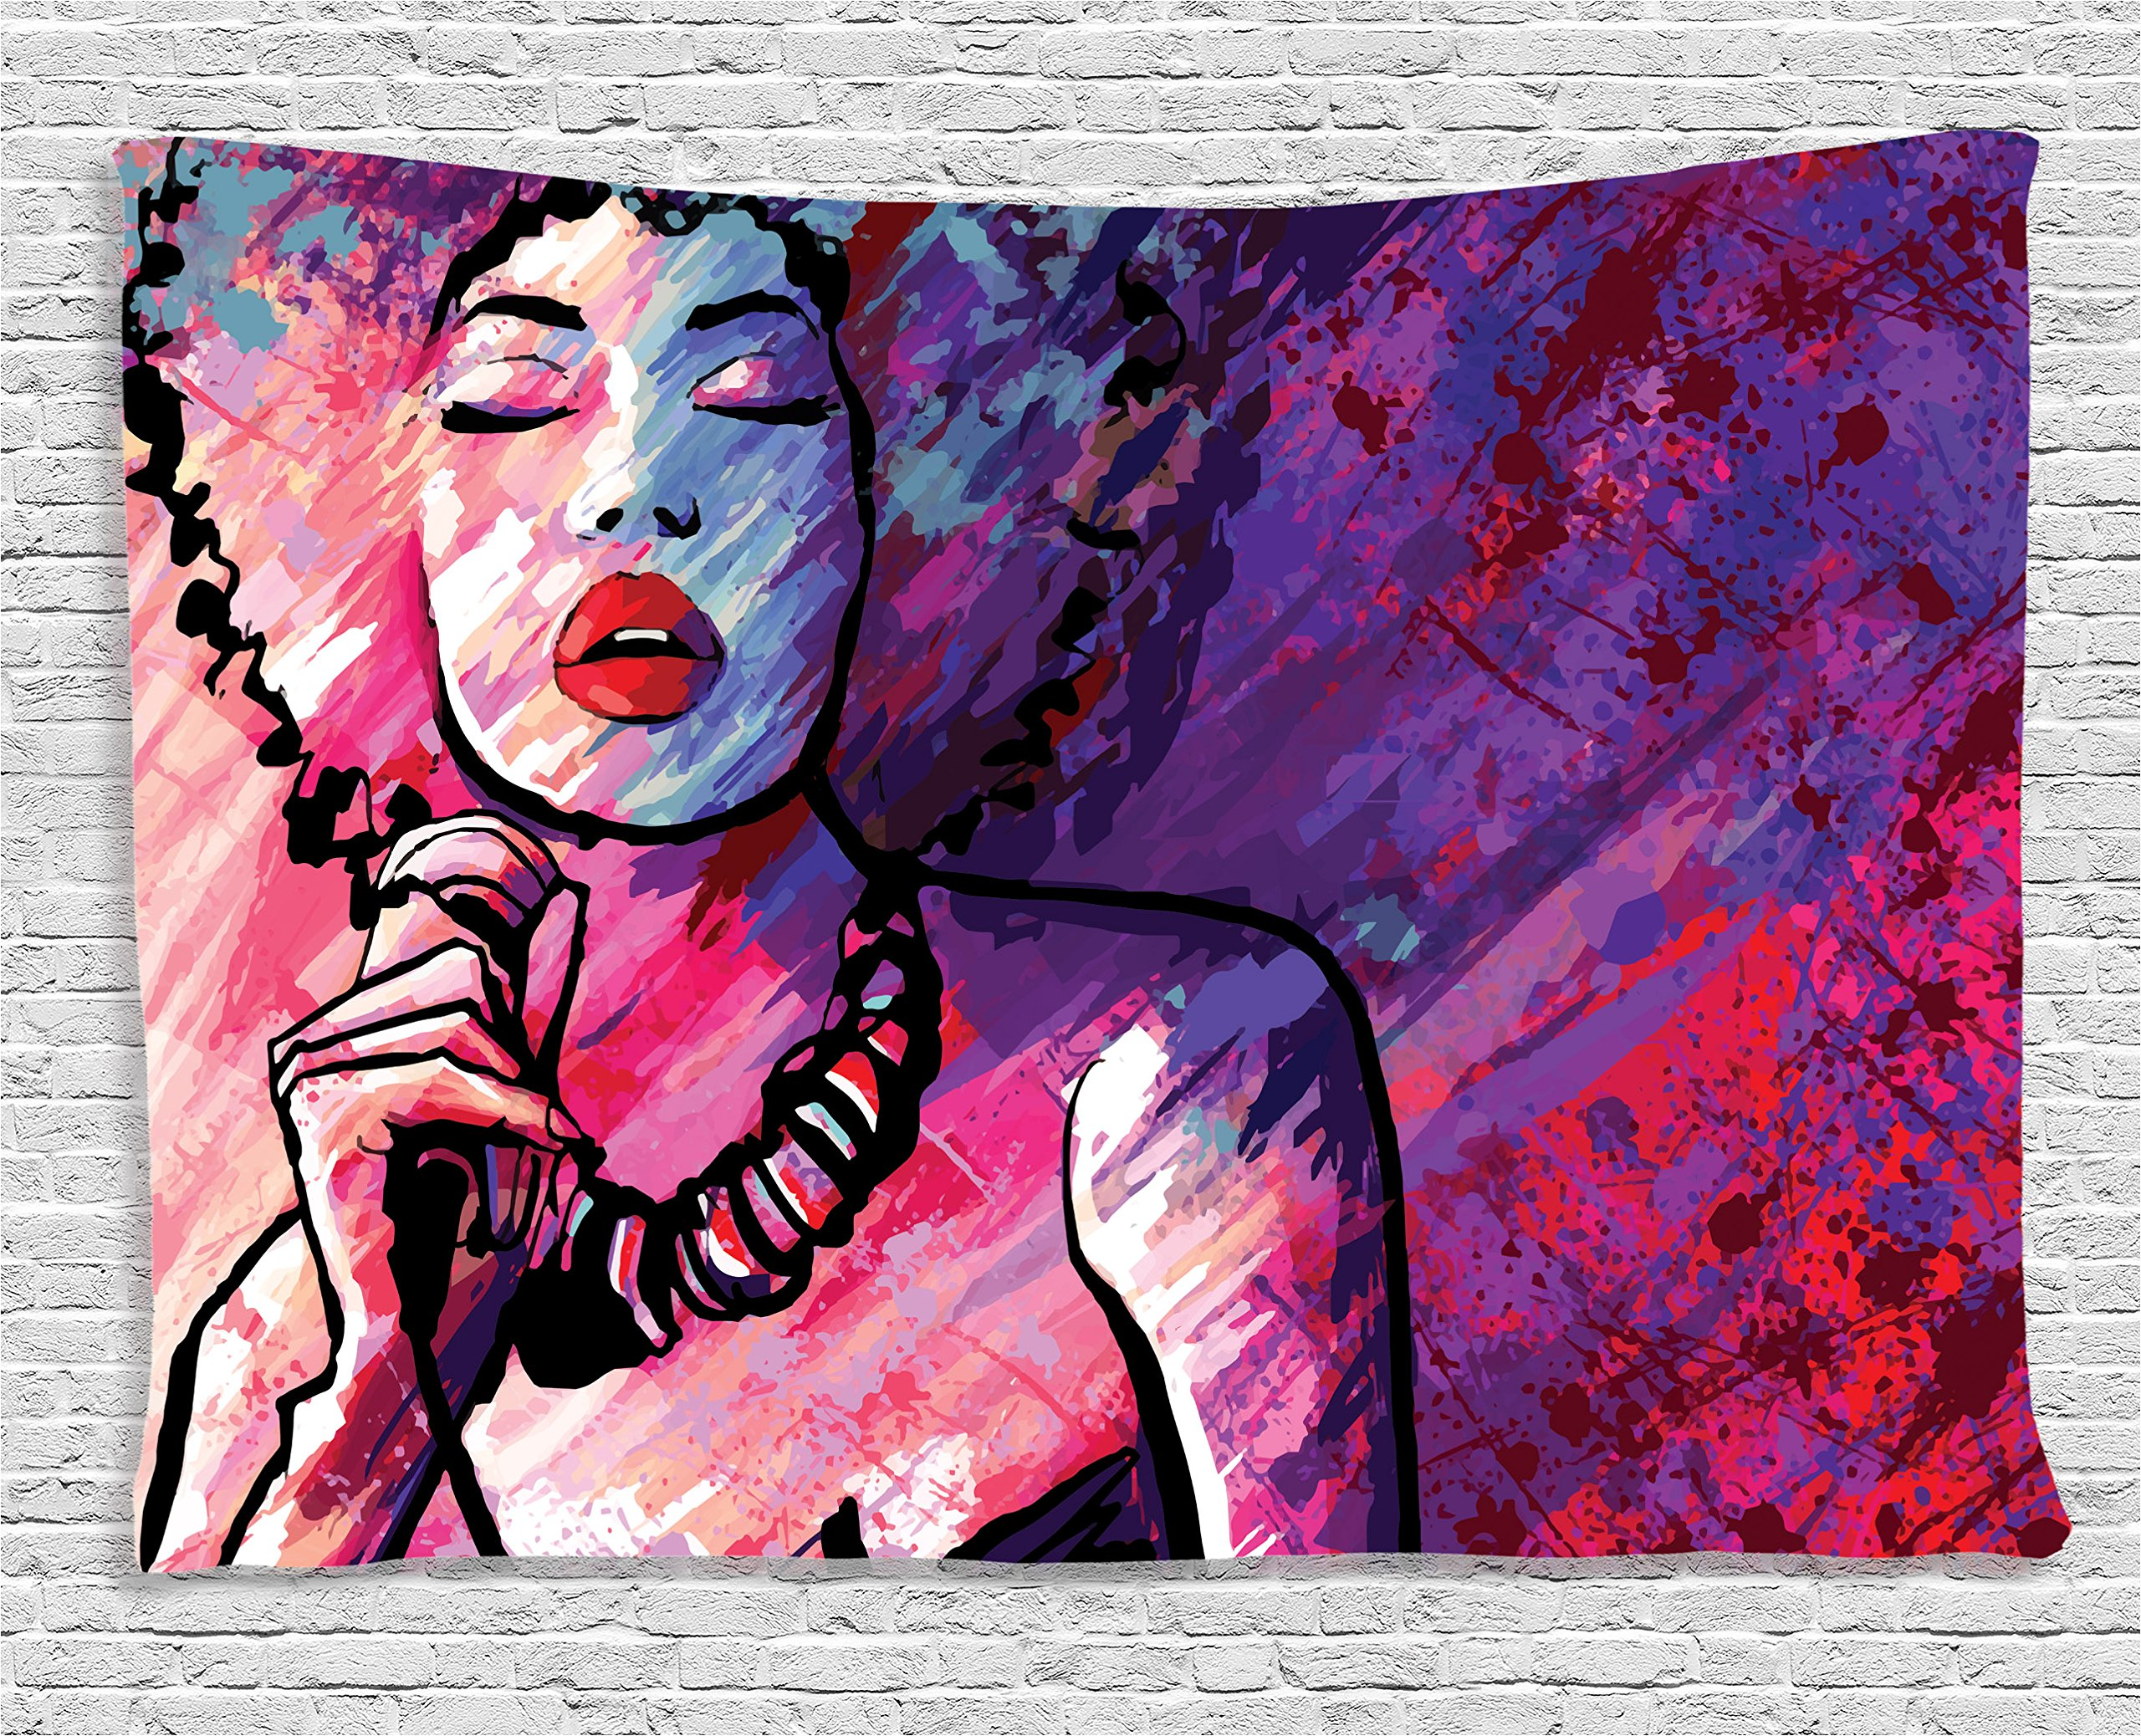 Ambesonne Grunge Home Decor Collection, Jazz Singer Performing with Microphone on Grunge Background Illustration Print, Bedroom Living Room Dorm Wall Hanging Tapestry, 80 X 60 Inches, Purple Pink